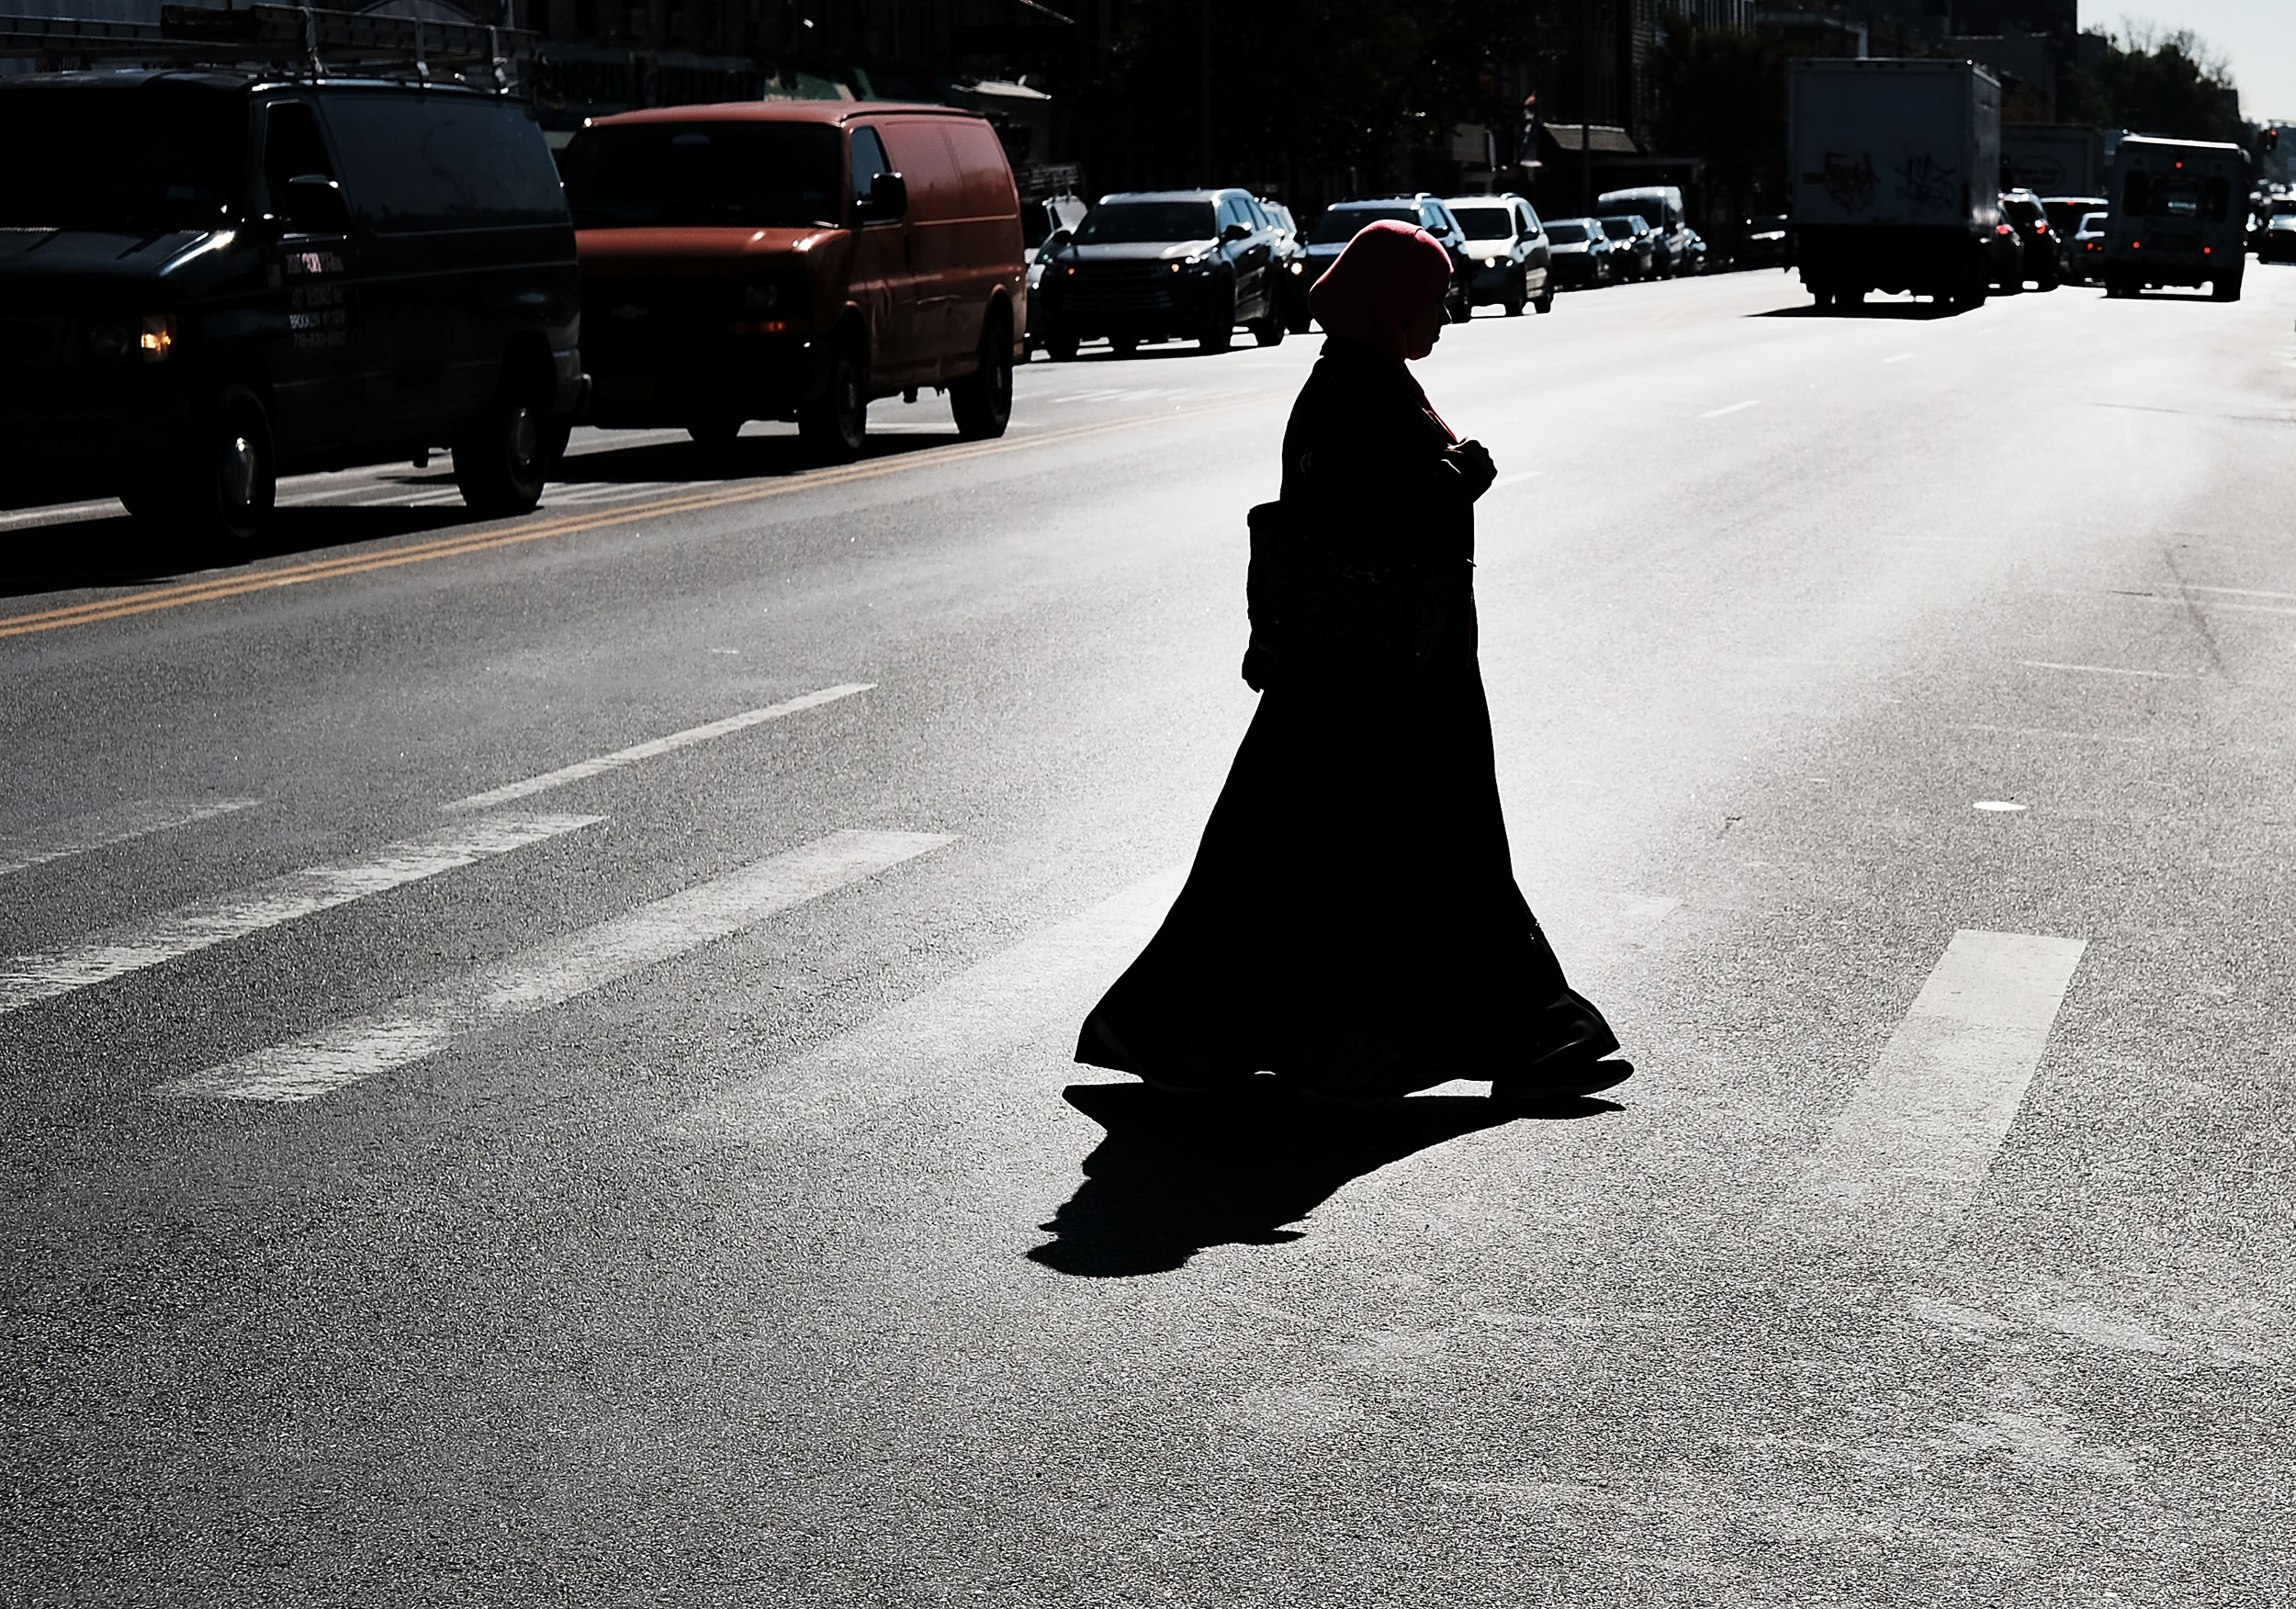 Read: Muslim woman says police forced her to remove her hijab